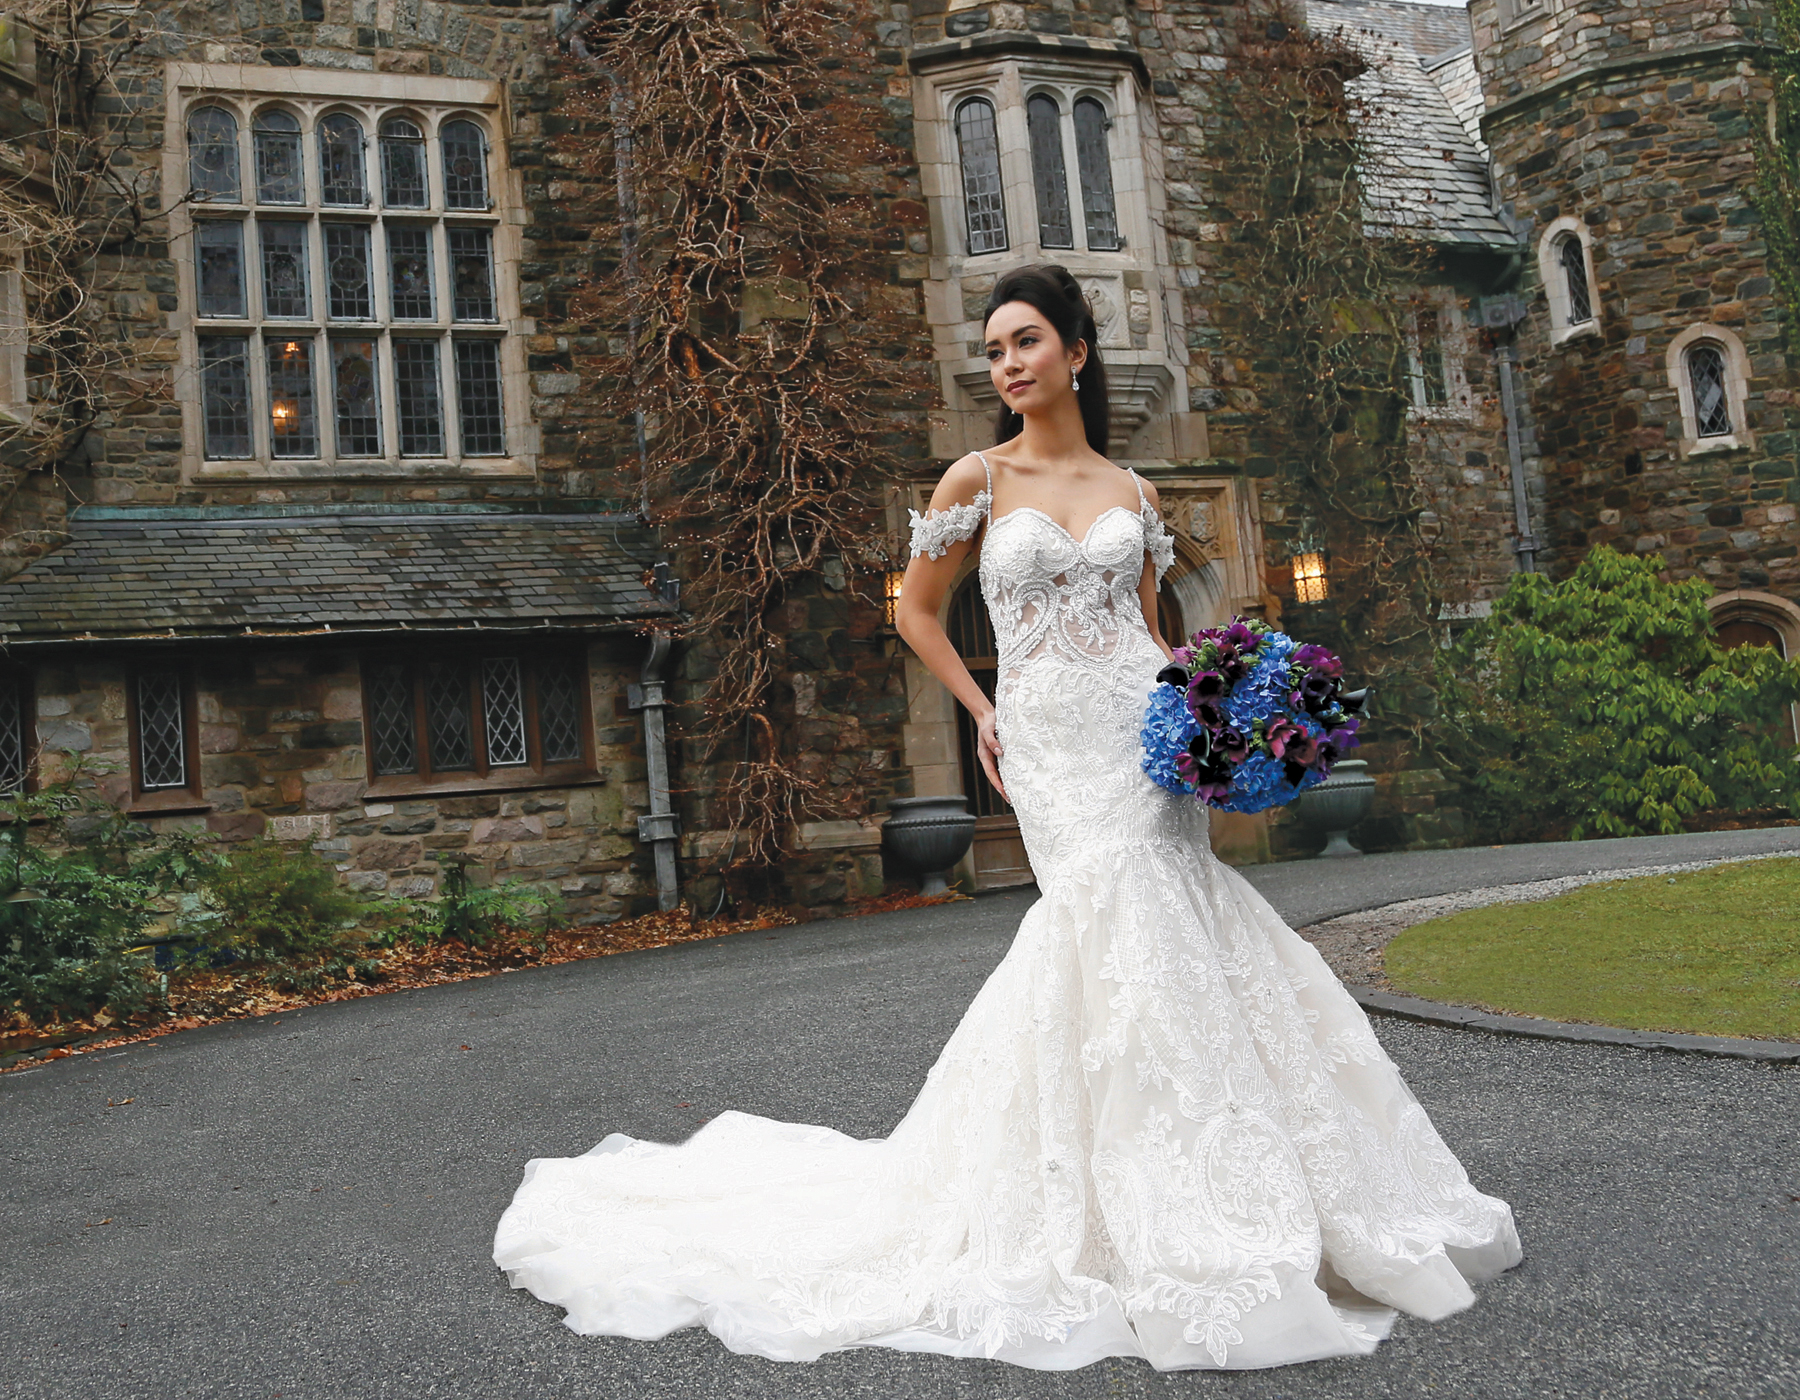 Wedding Dresses Boutiques Nj : Bridal gowns at the skylands manor in new jersey